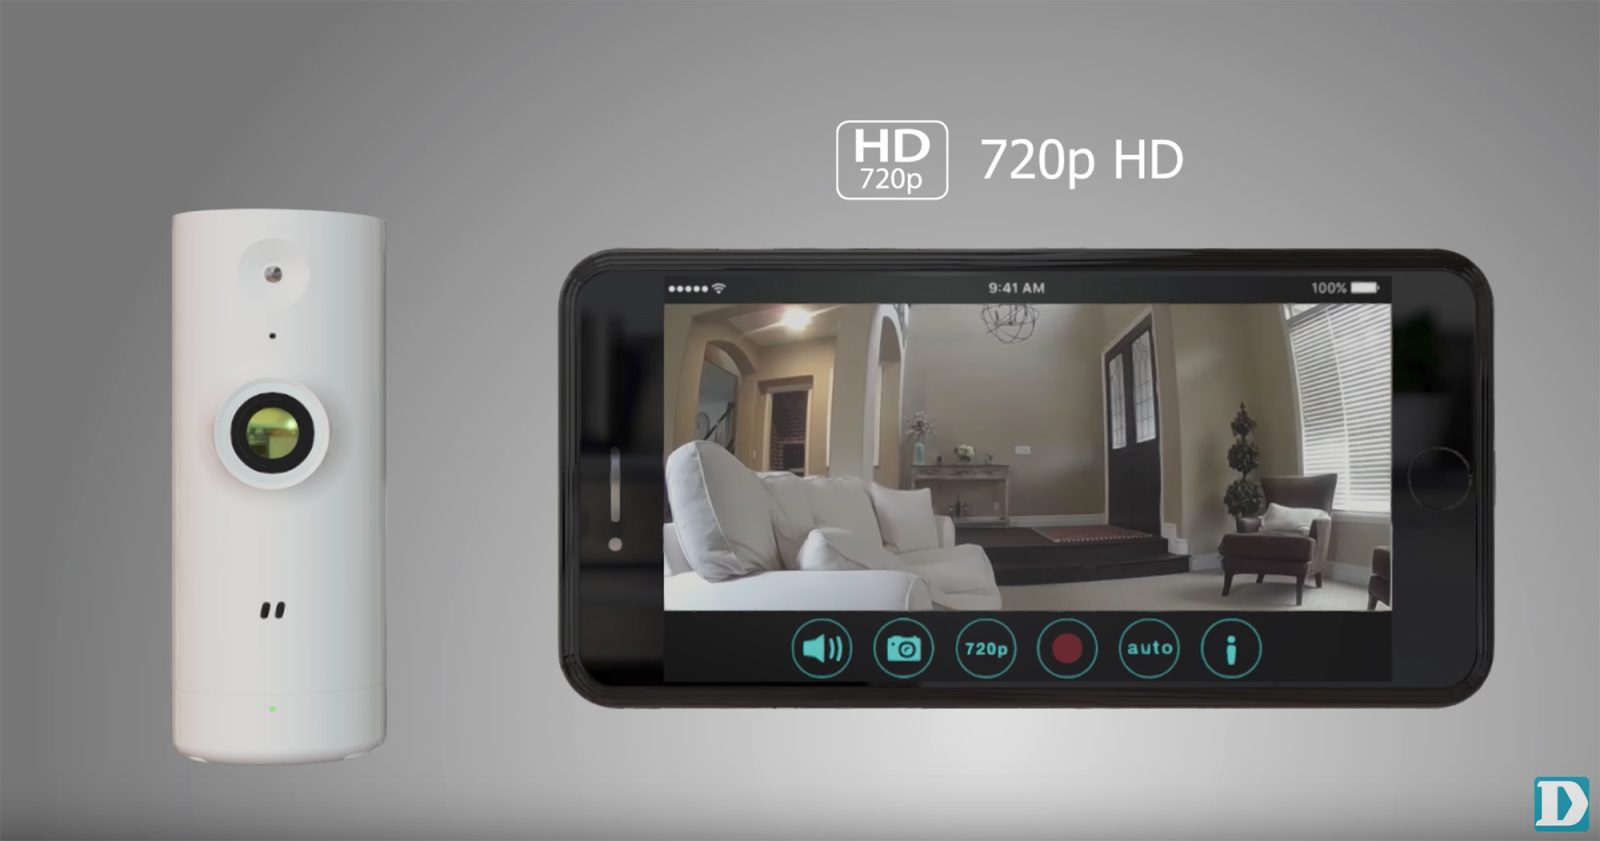 D-Link's new $60 Wi-Fi Surveillance Camera offers HD streams at an affordable price